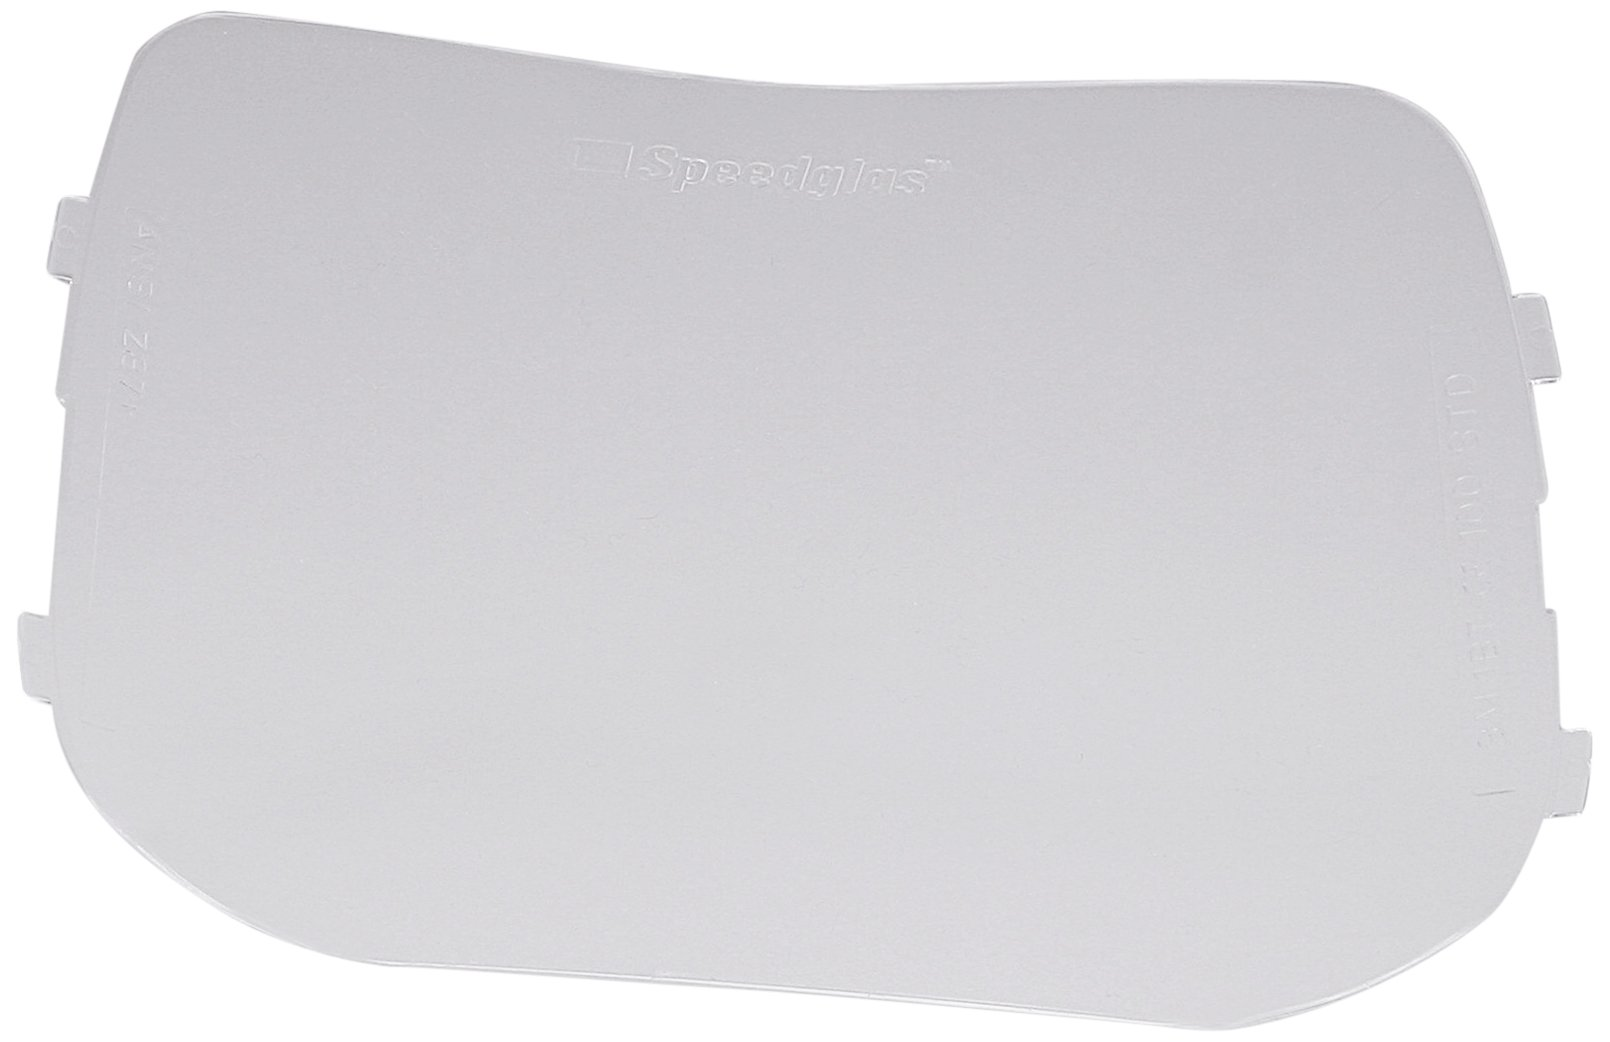 3M Speedglas Outside Protection Plate 100, Welding Safety 07-0200-51/37243(AAD), Standard